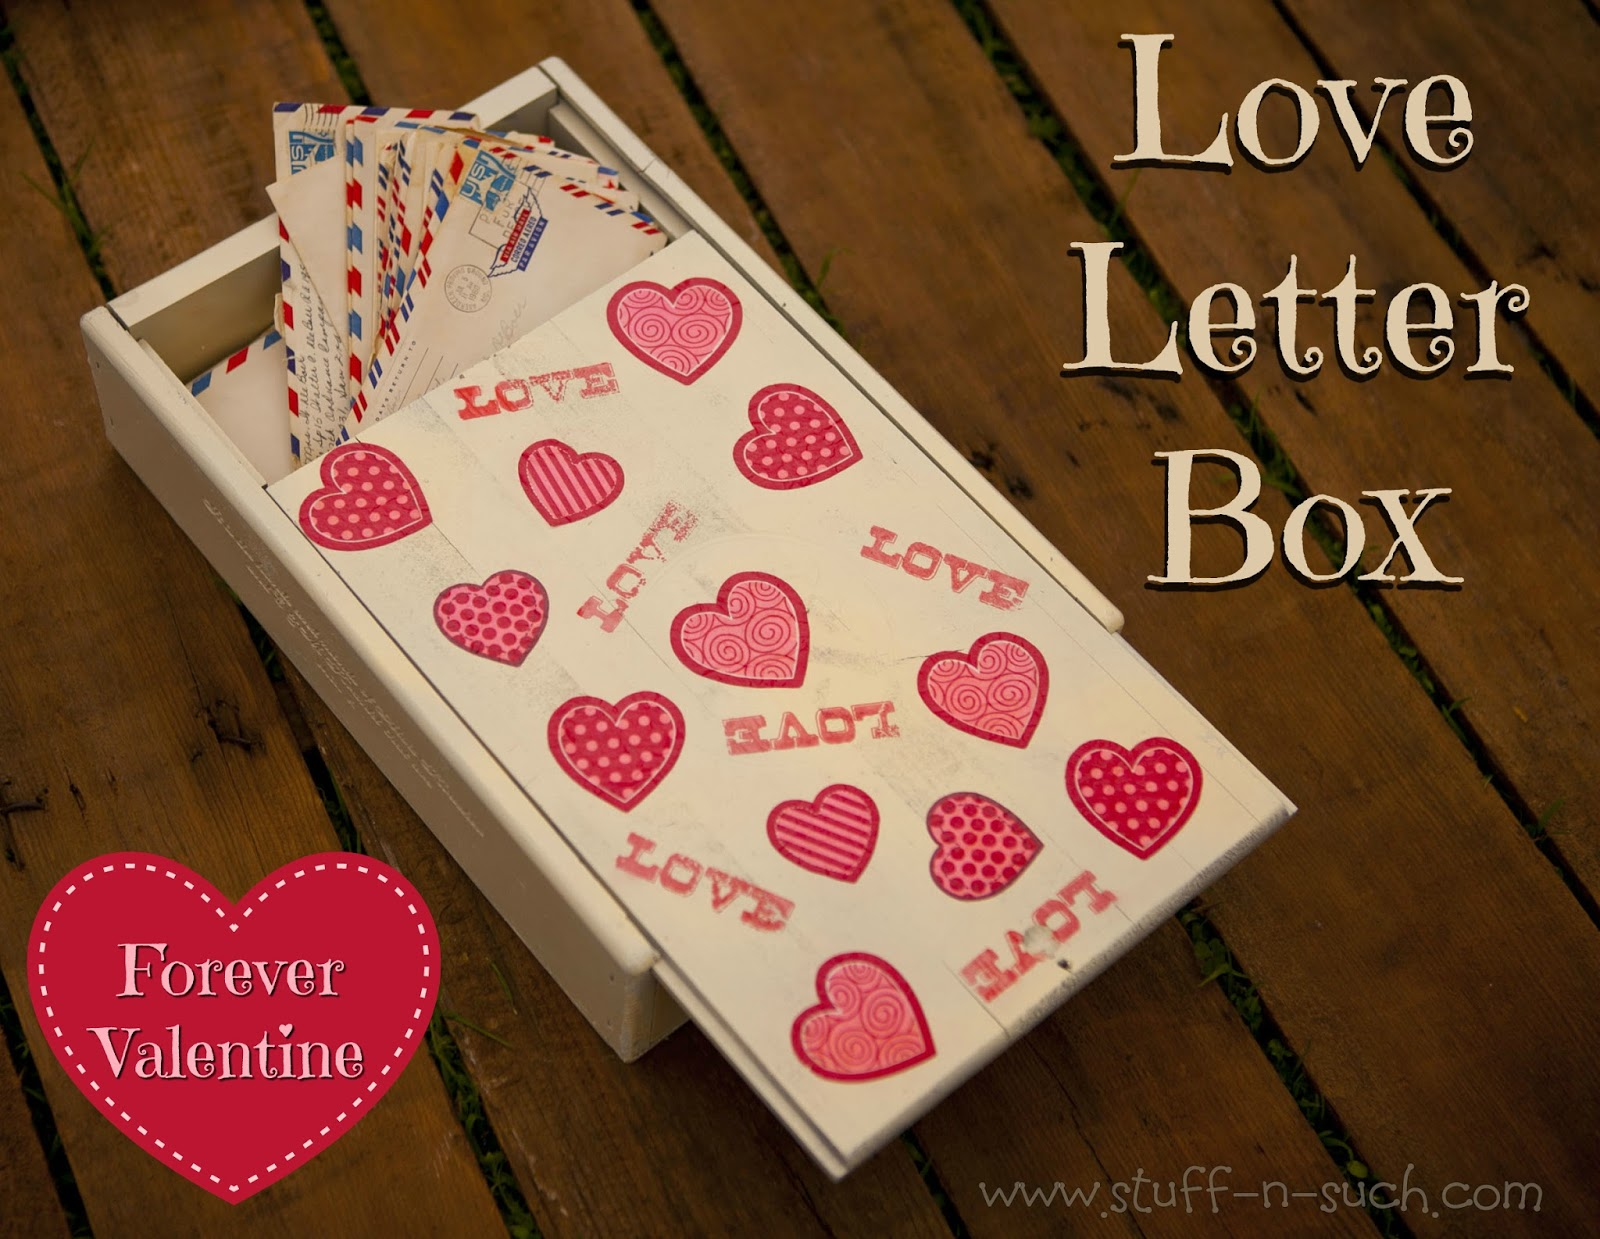 StuffnSuch By Lisa Valentine Love Letter Keepsake Box